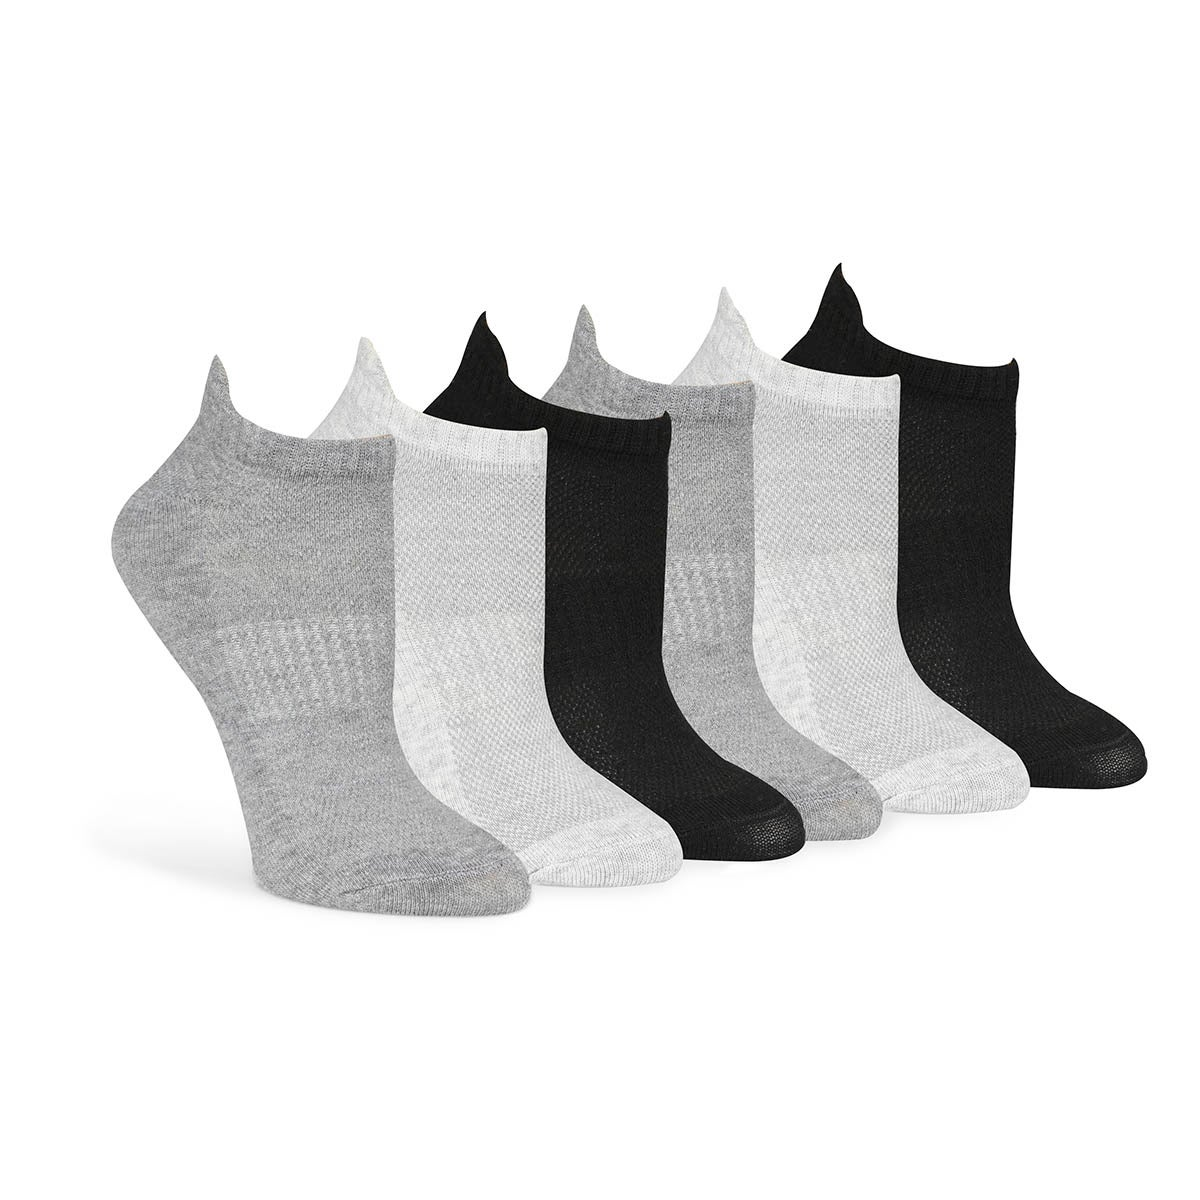 Lds Solid blk/gry extra low cut -6 pk